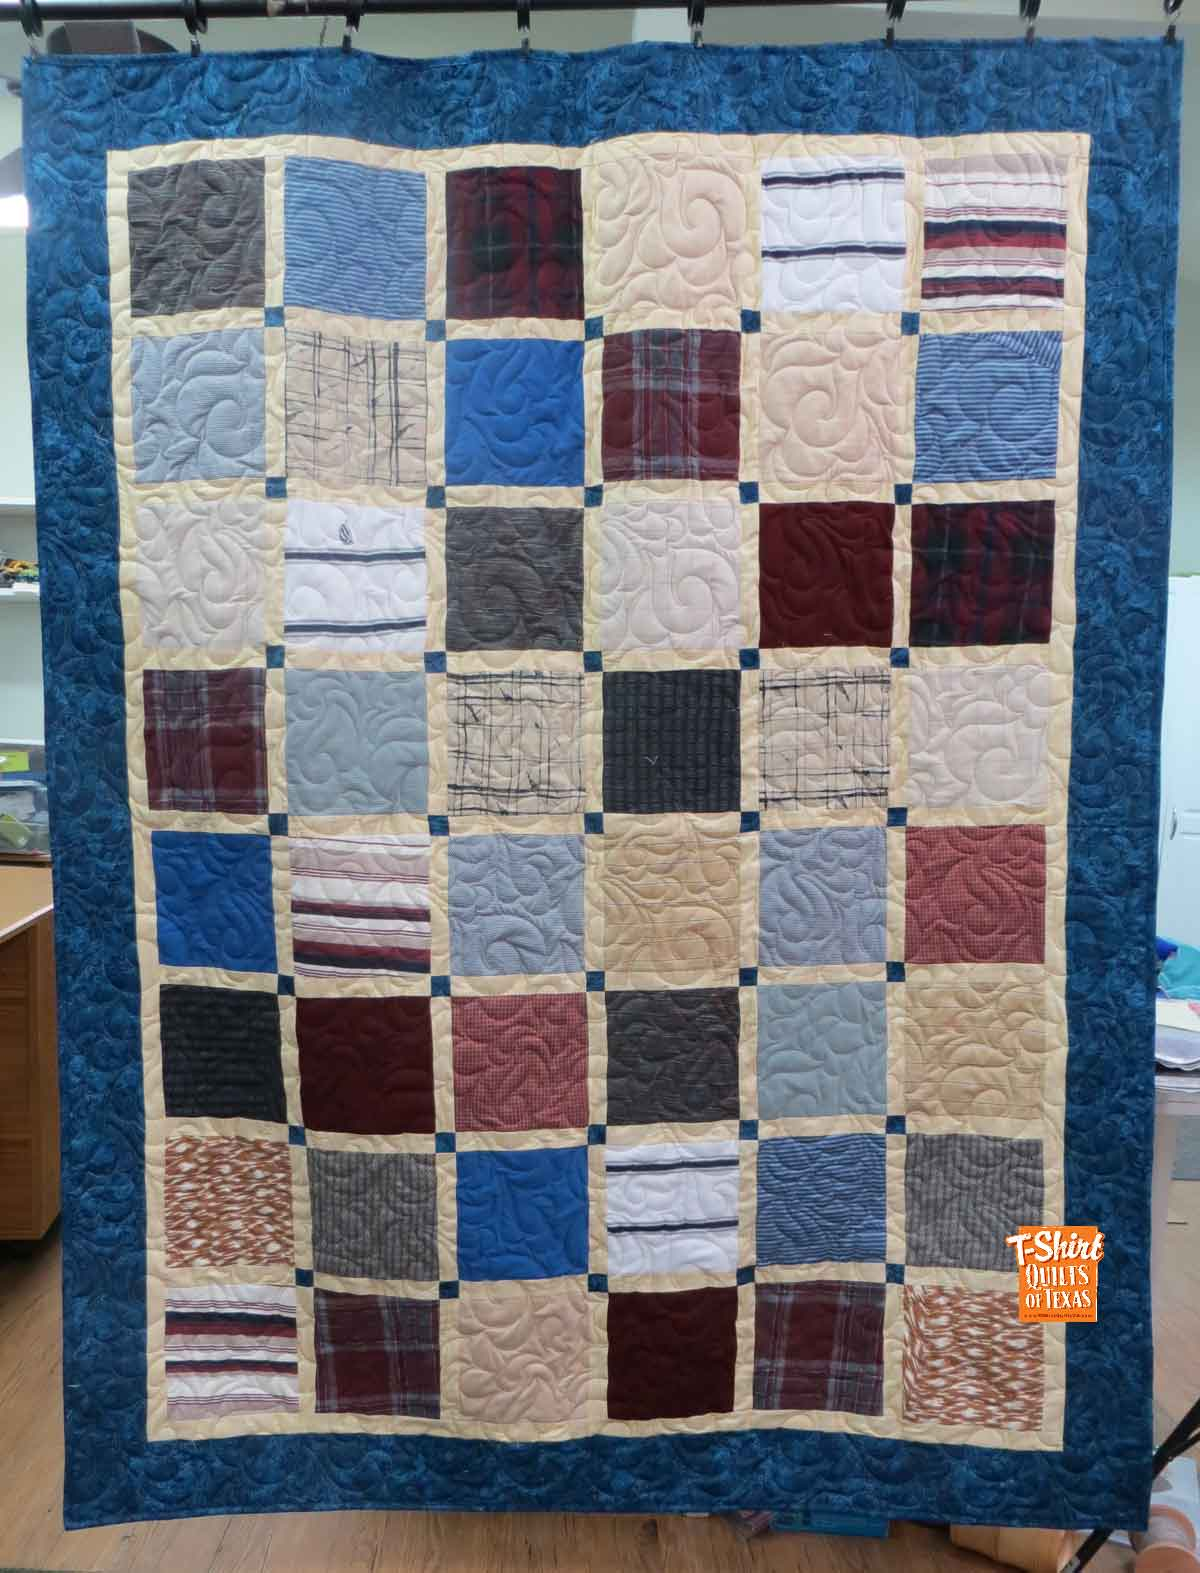 Traditional Memory Quilts made from Clothing in Texas